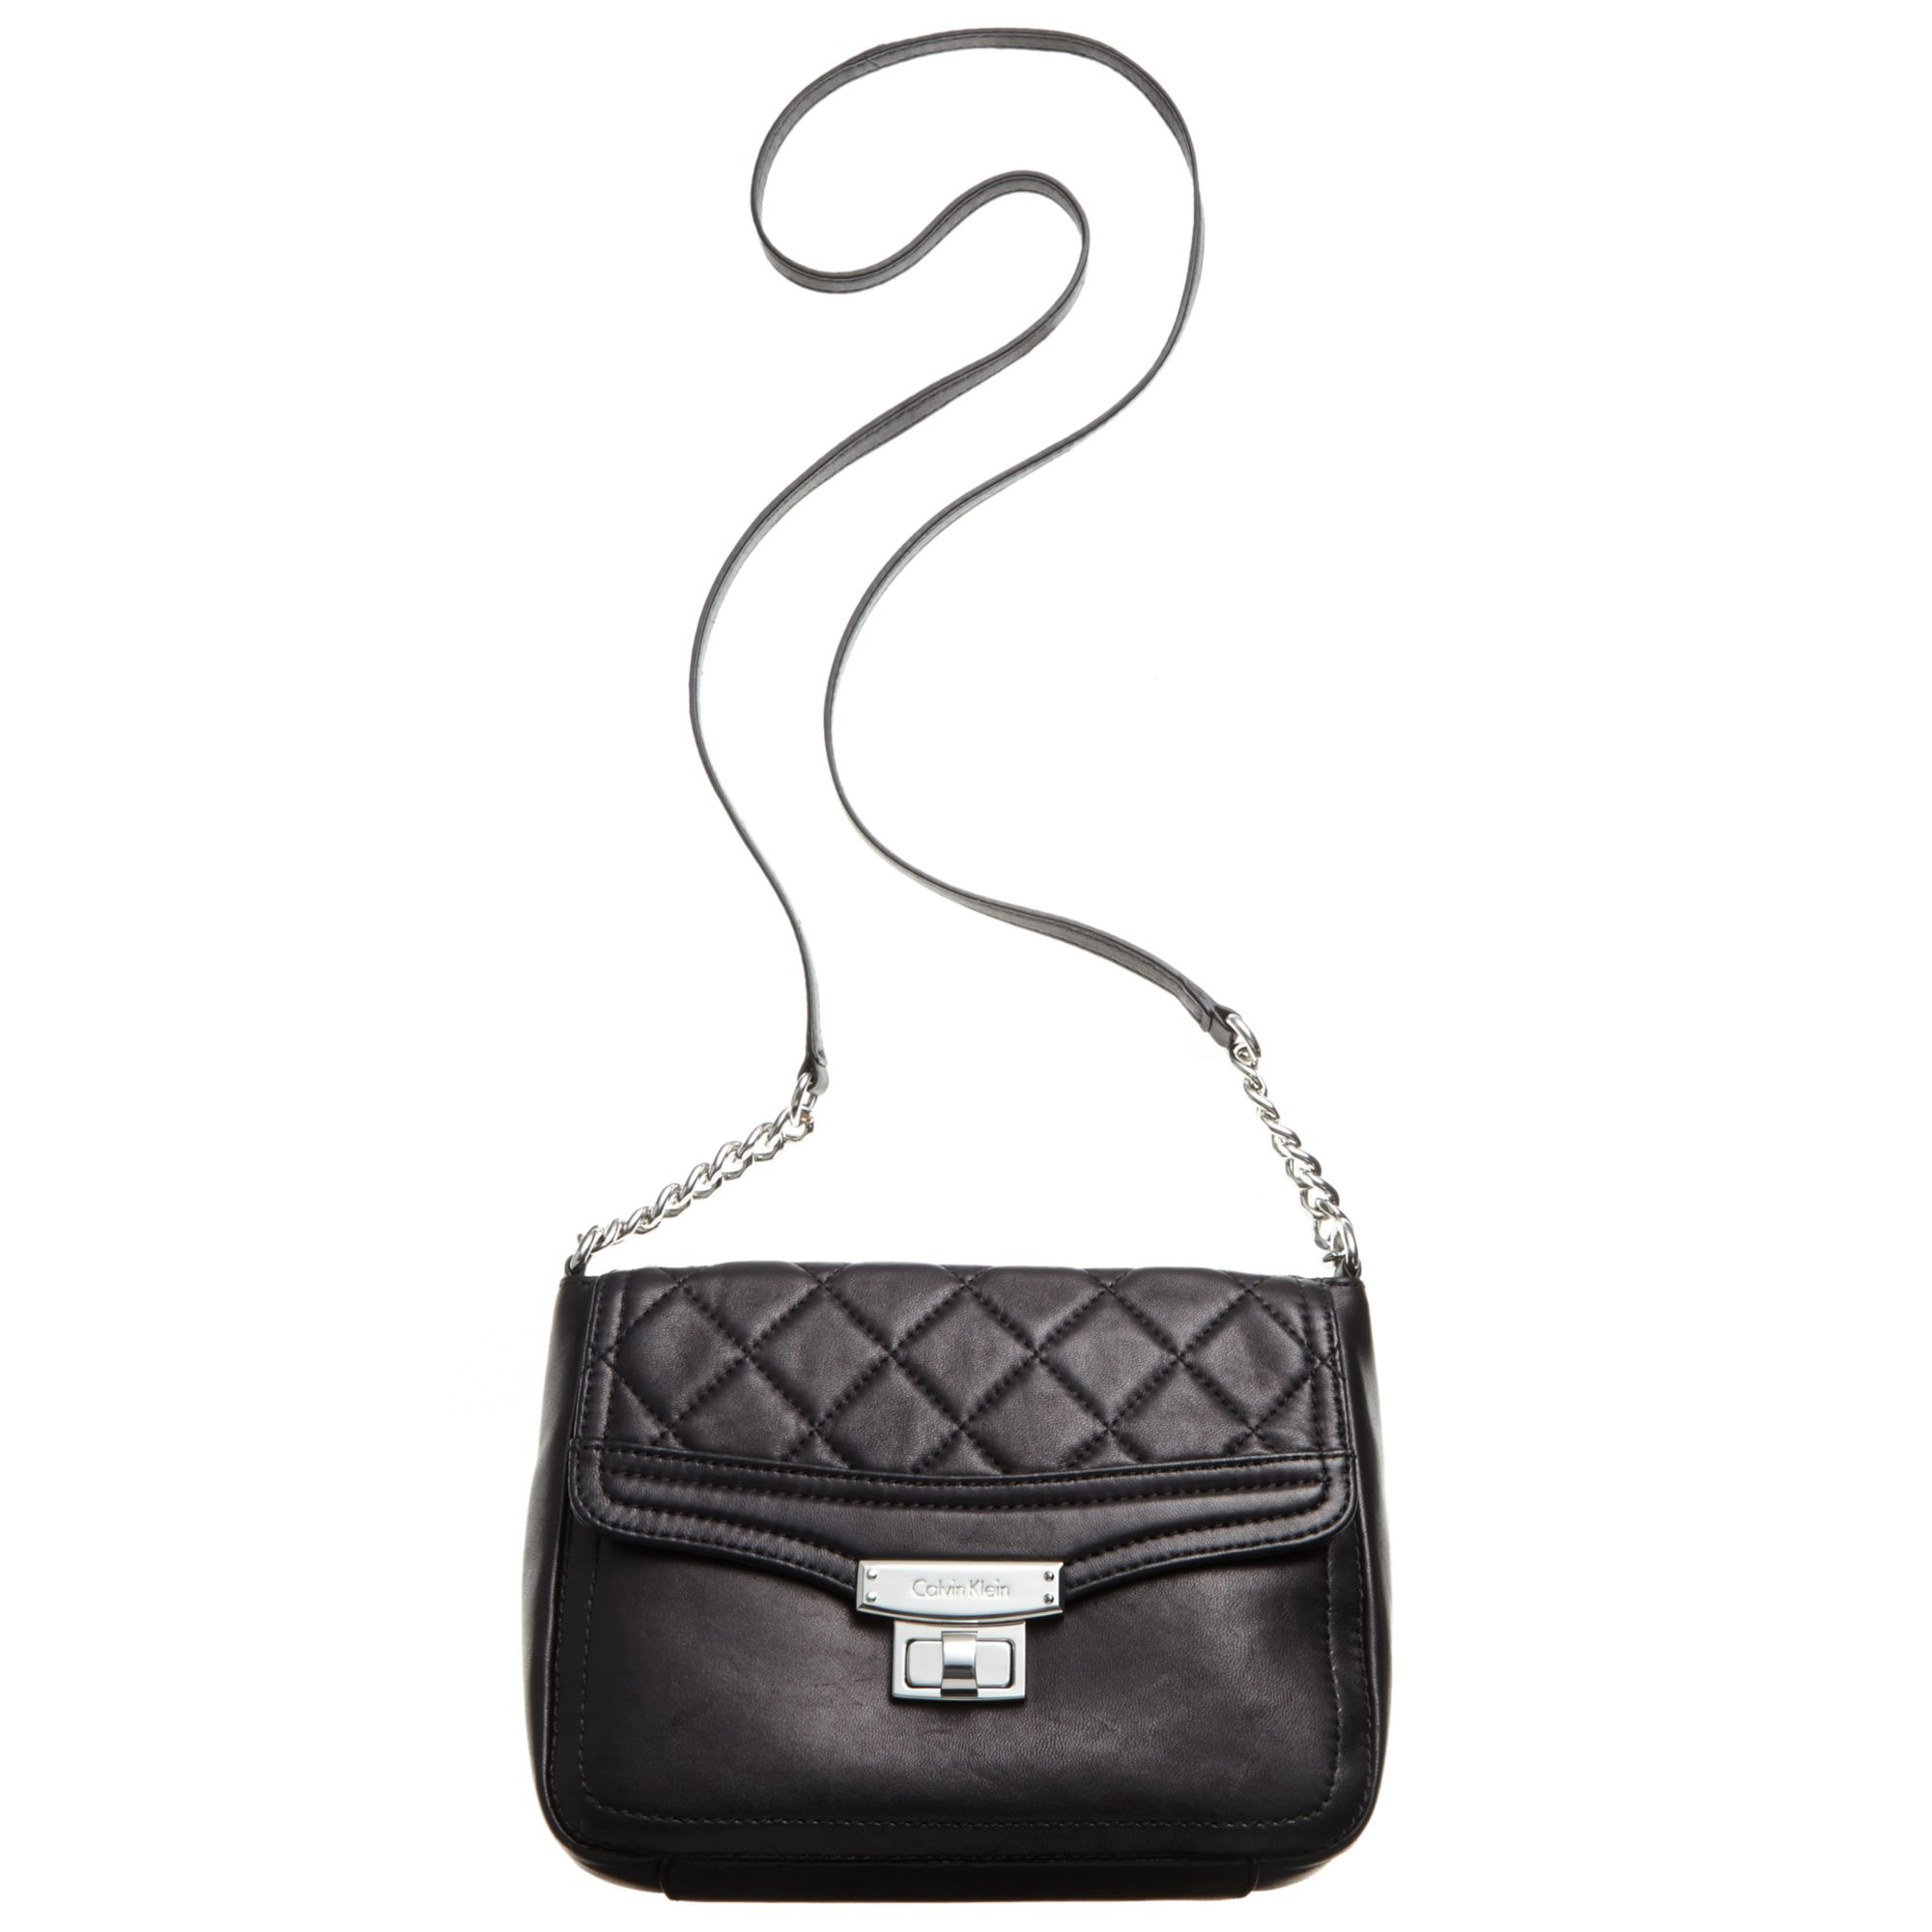 81317c6ad81b Gallery. Previously sold at: Macy's · Women's Calvin Klein Crossbody ...